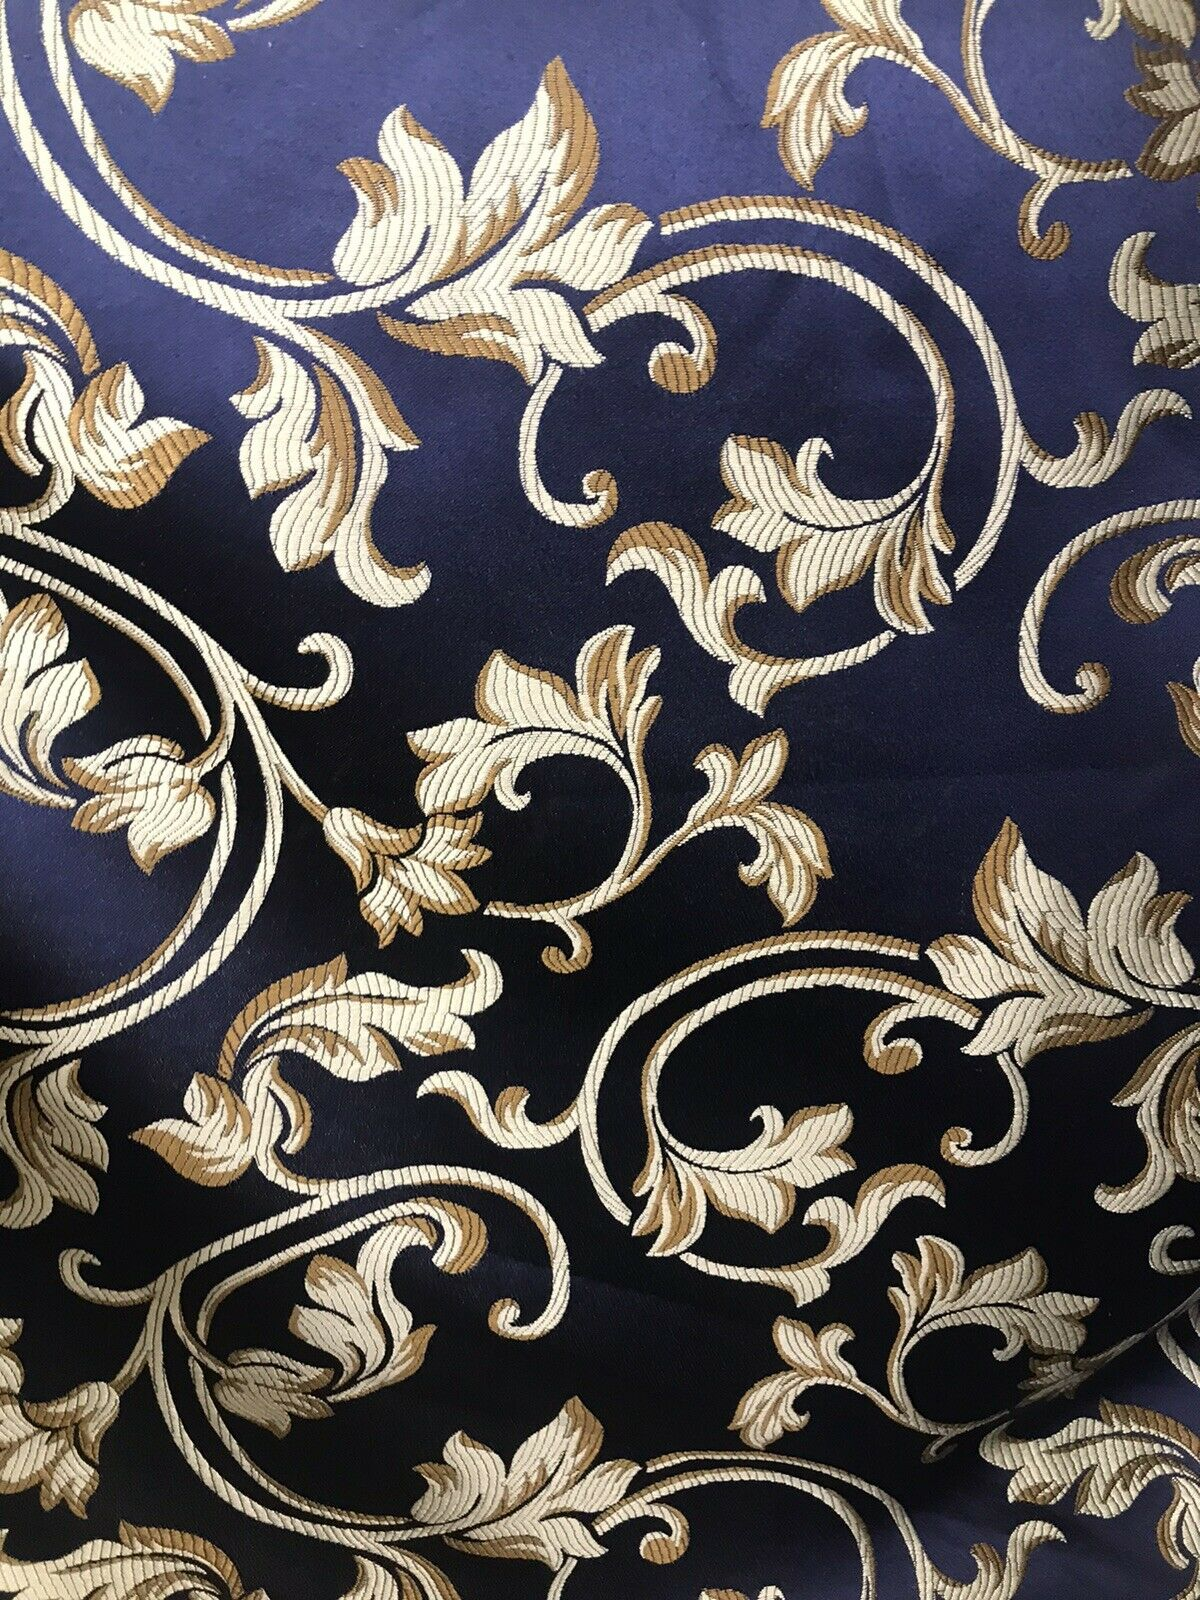 SALE Prince Gaspard Neoclassical Brocade Satin Damask Upholstery Fabric- Louis Blue Navy